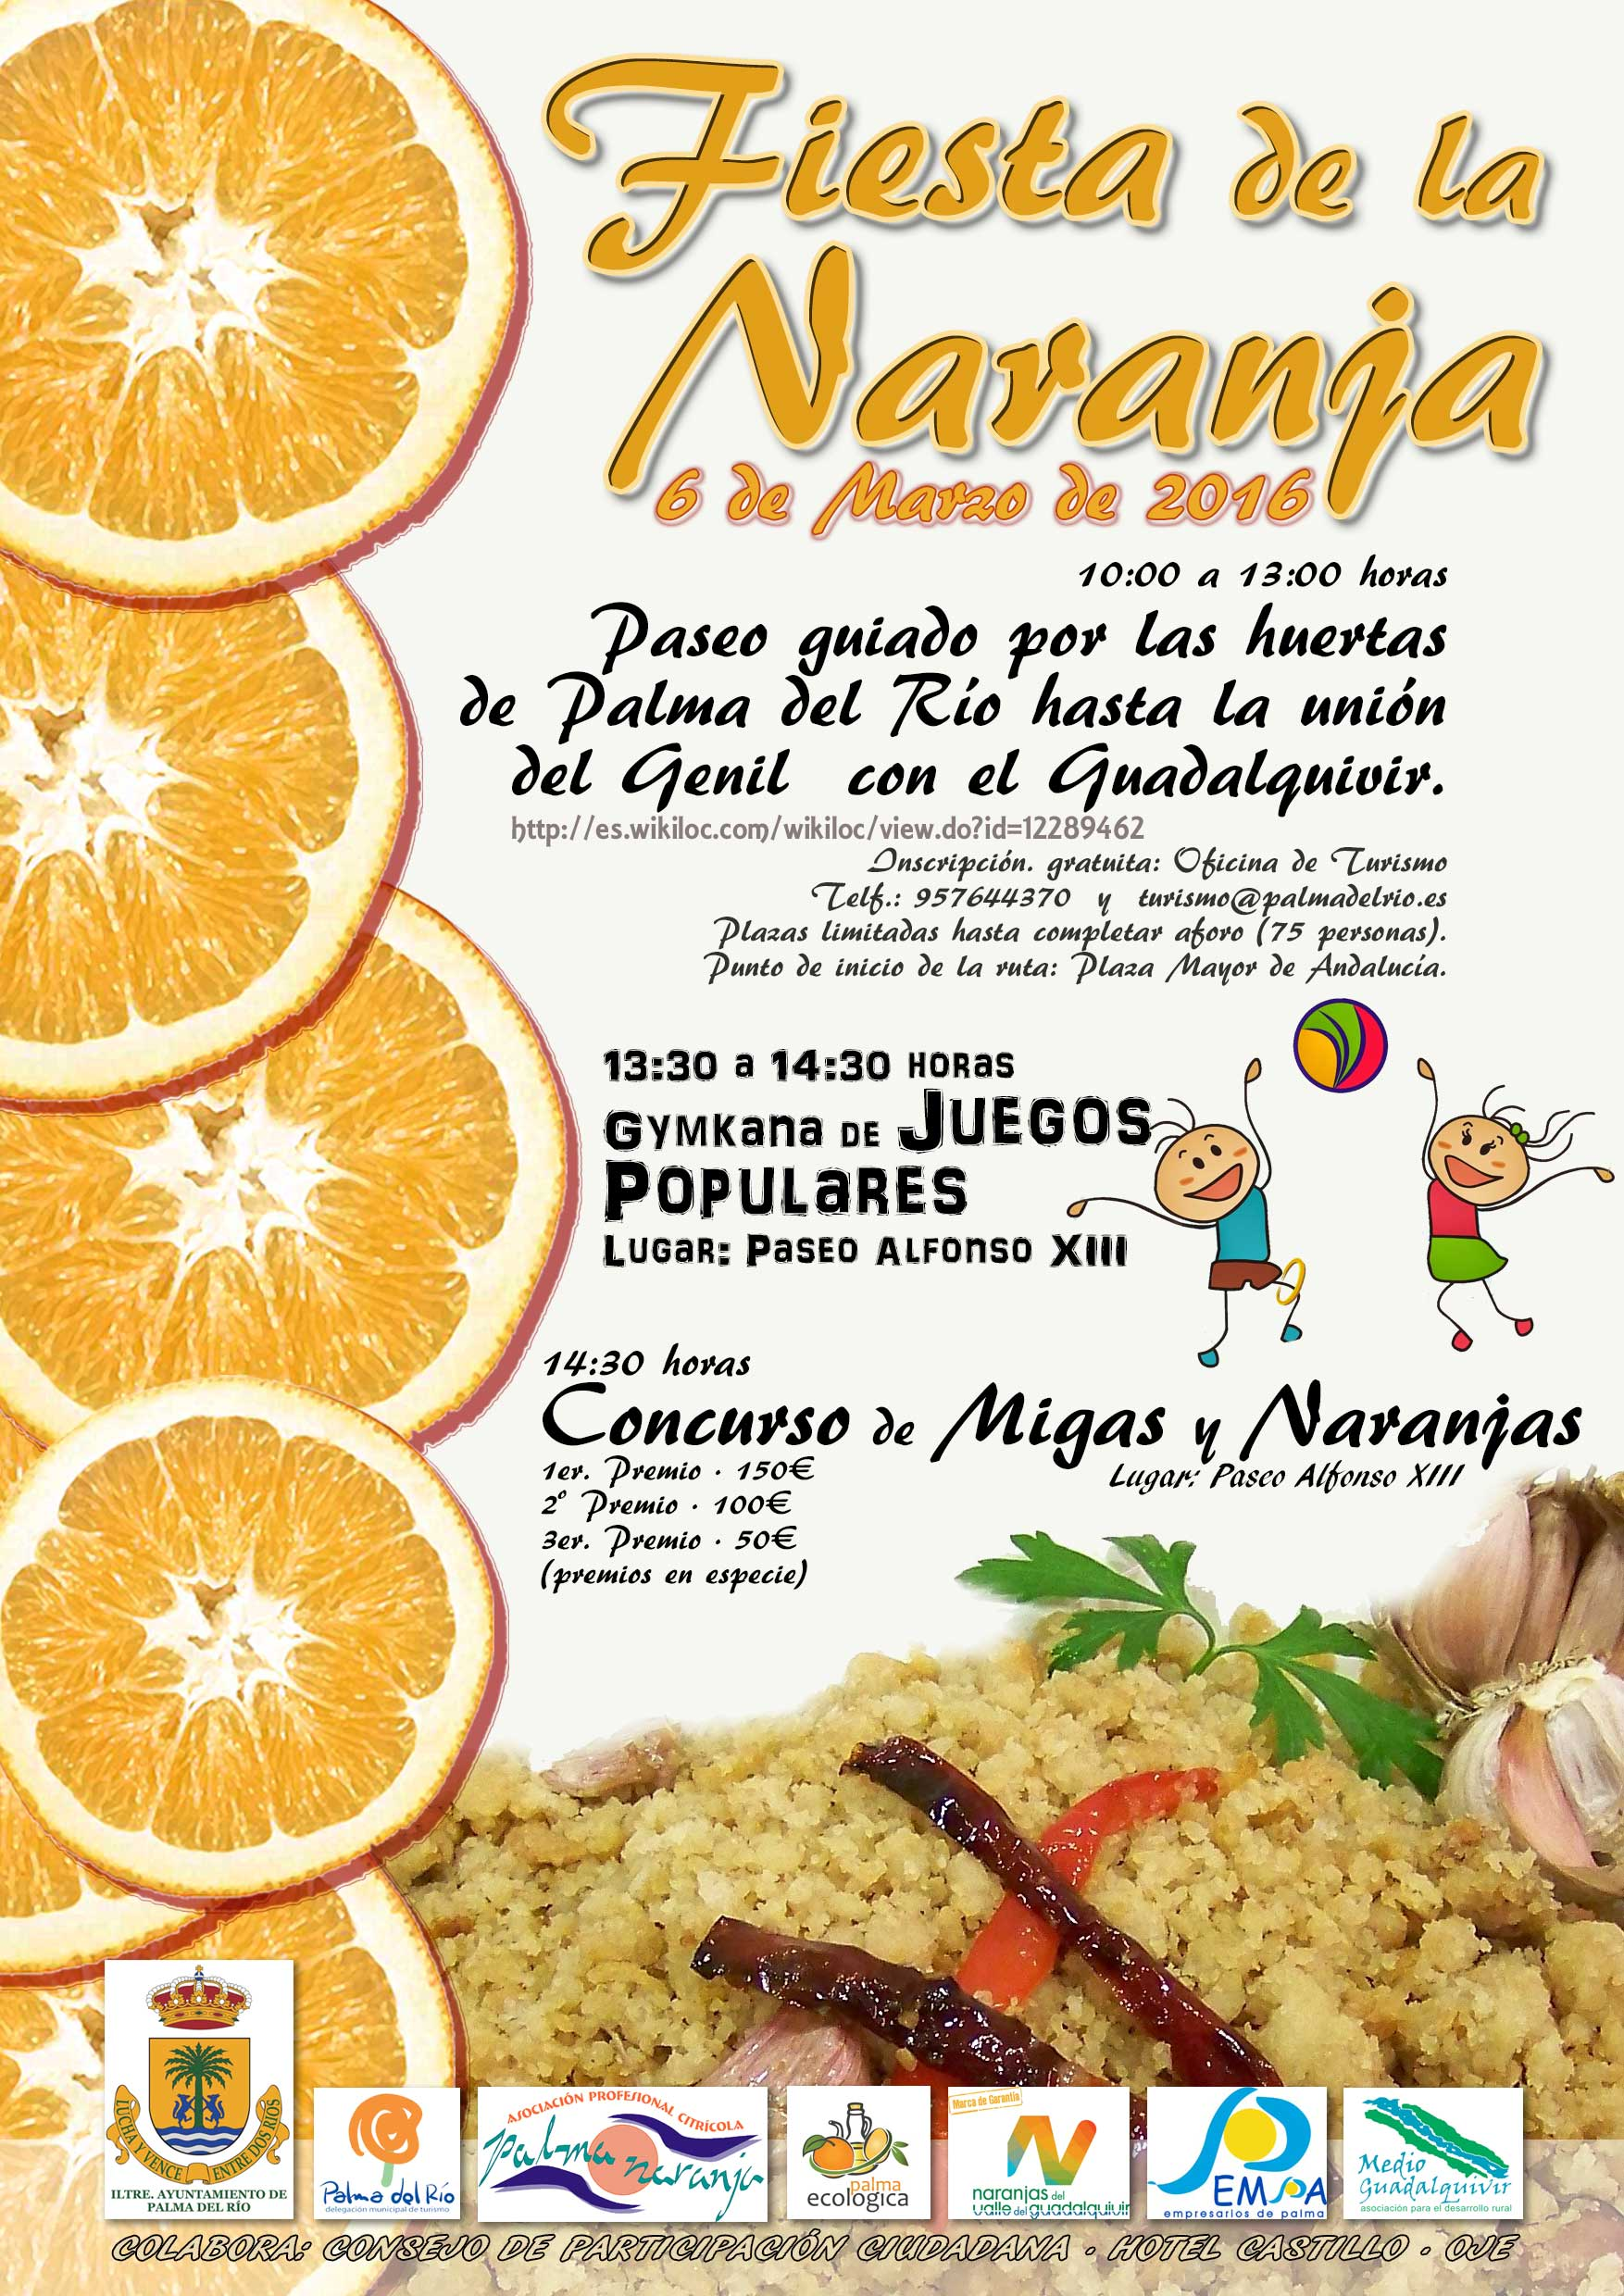 https://www.palmadelrio.es/sites/default/files/fiesta-de-la-naranja-2016.jpg